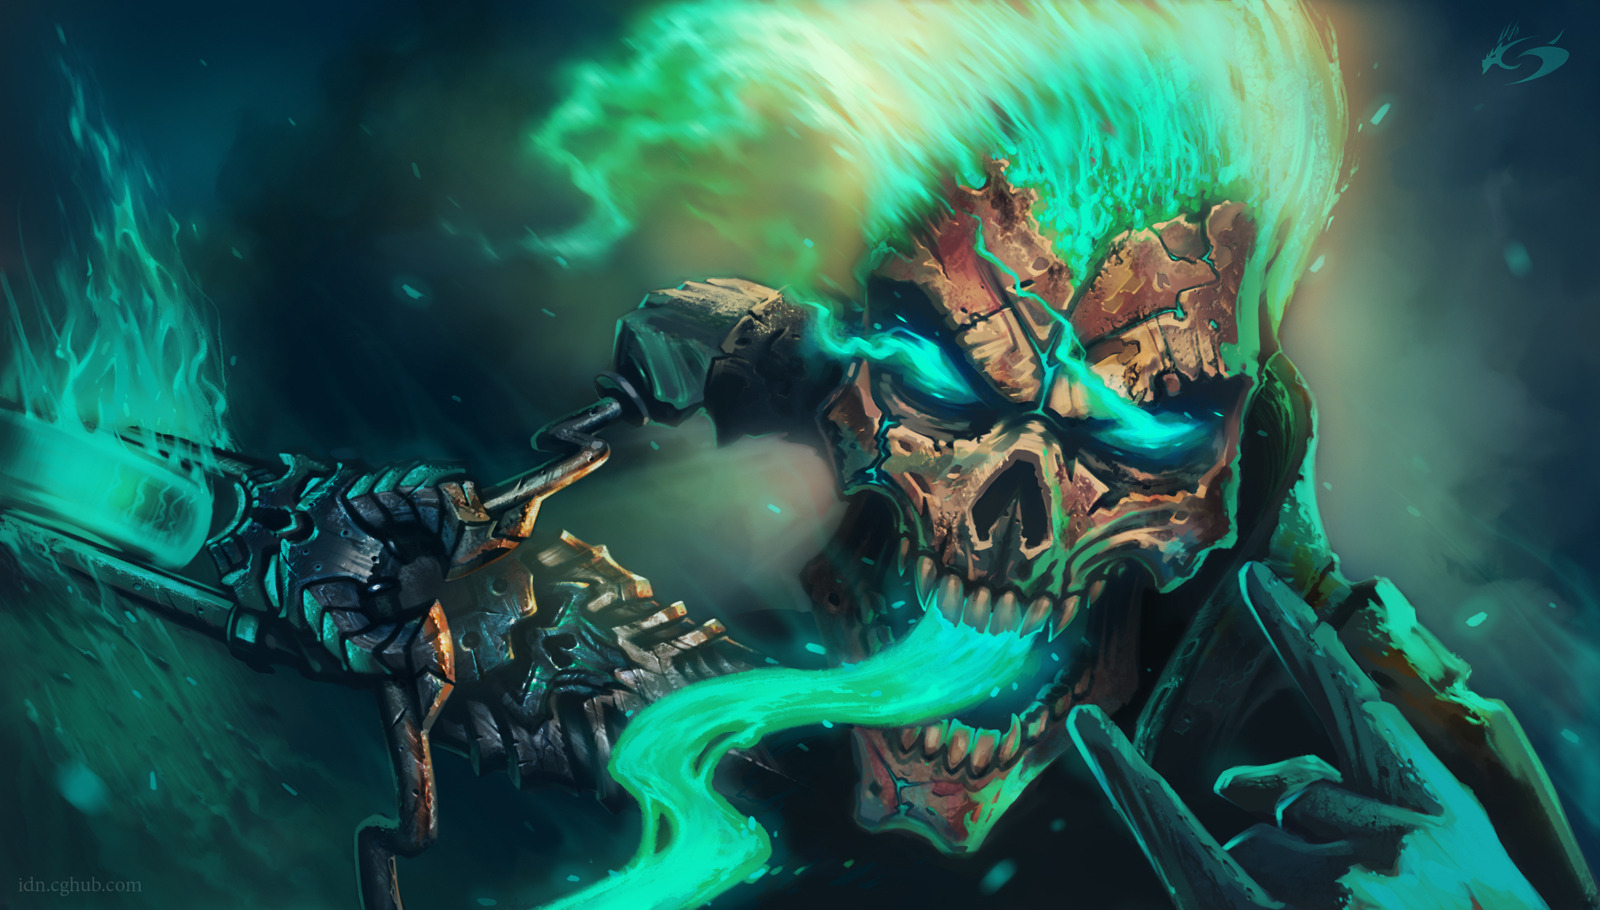 Cool Painting Skull Wallpaper Desktop Wallpaper WallpaperLepi 1600x910